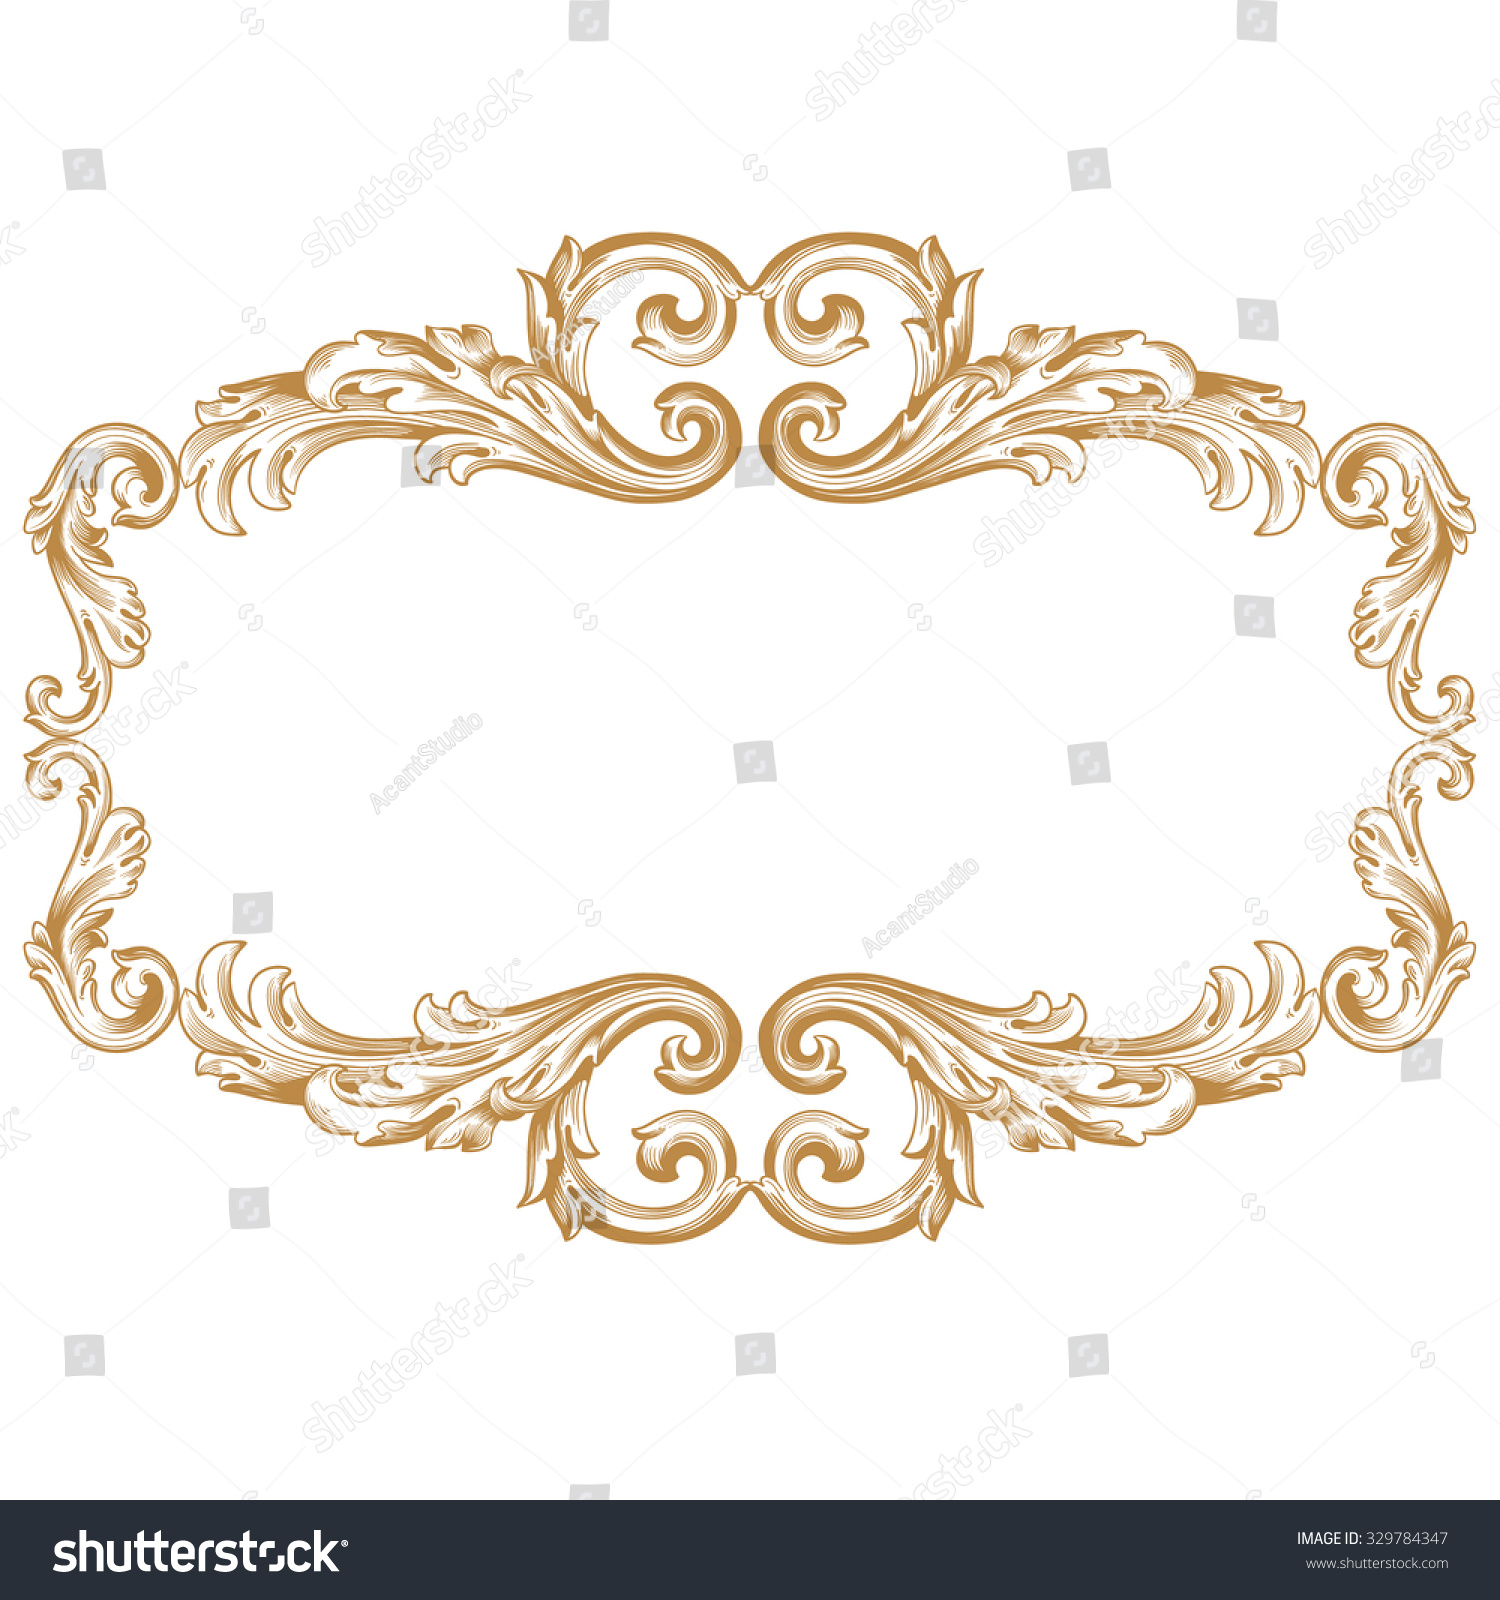 Antique Scrollimgs: Premium Gold Vintage Baroque Frame Scroll Stock Vector